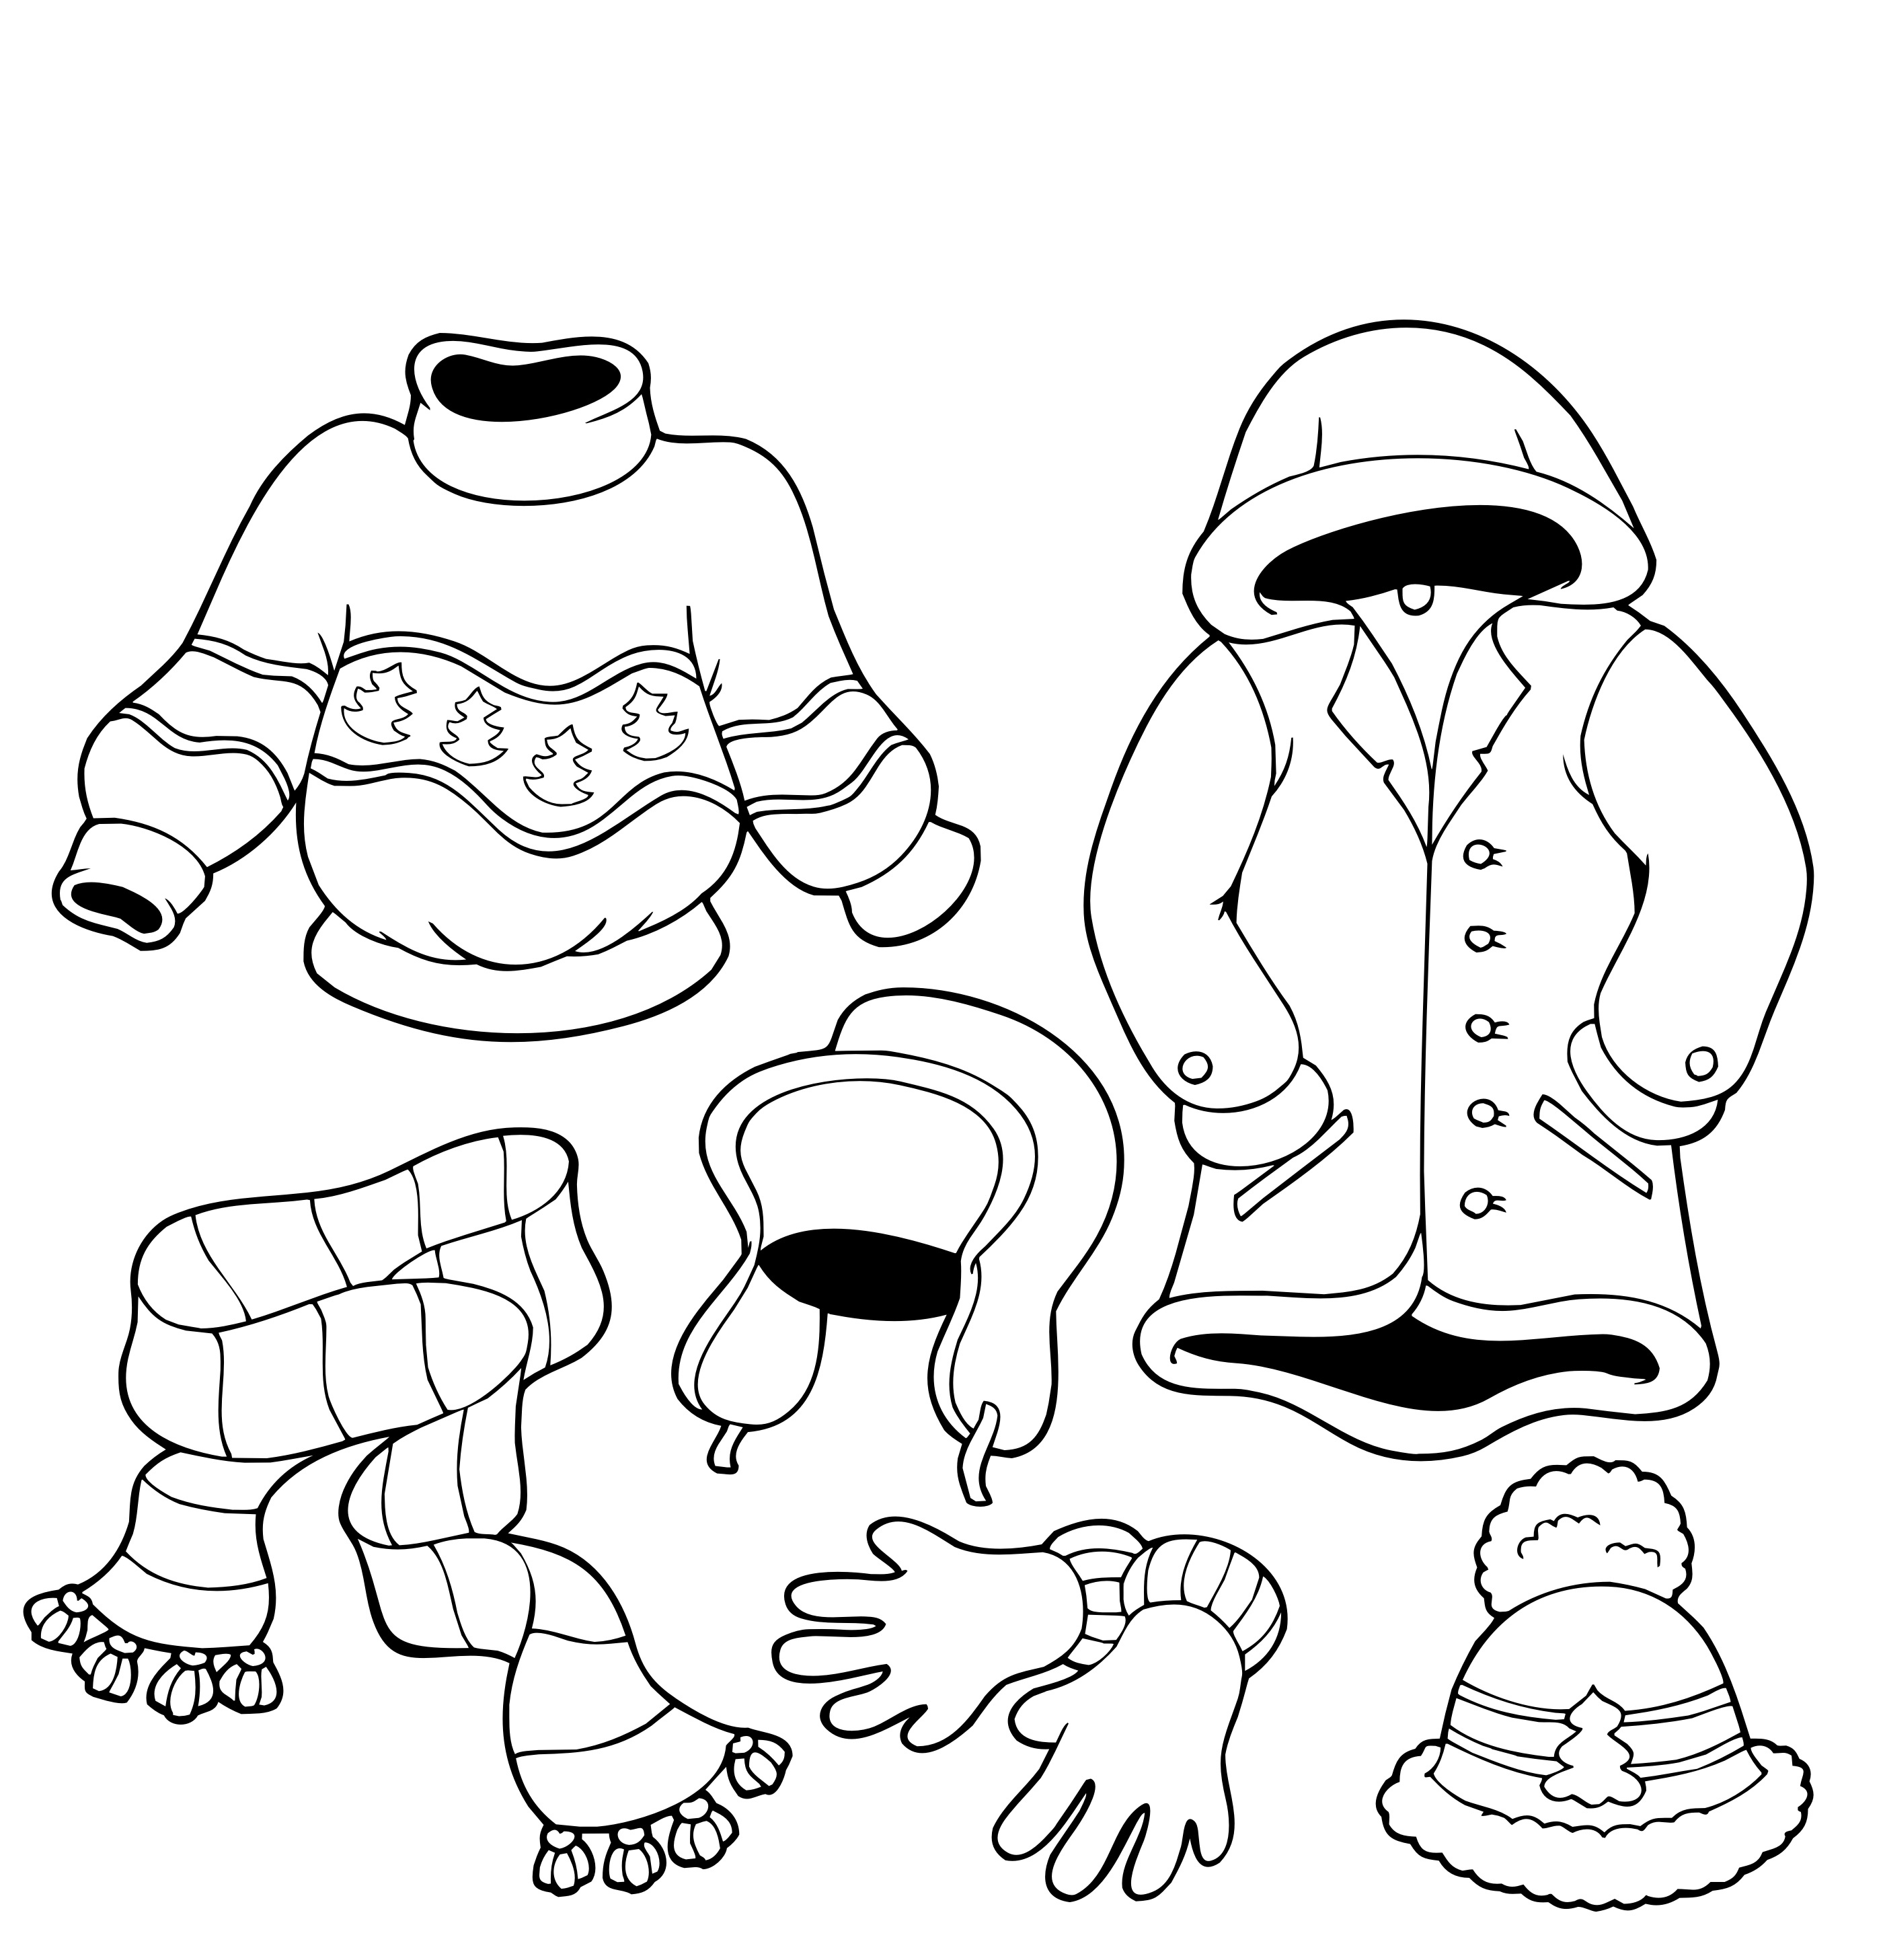 coloring pages clothes printable flamenco dress coloring page free clothing coloring printable pages coloring clothes